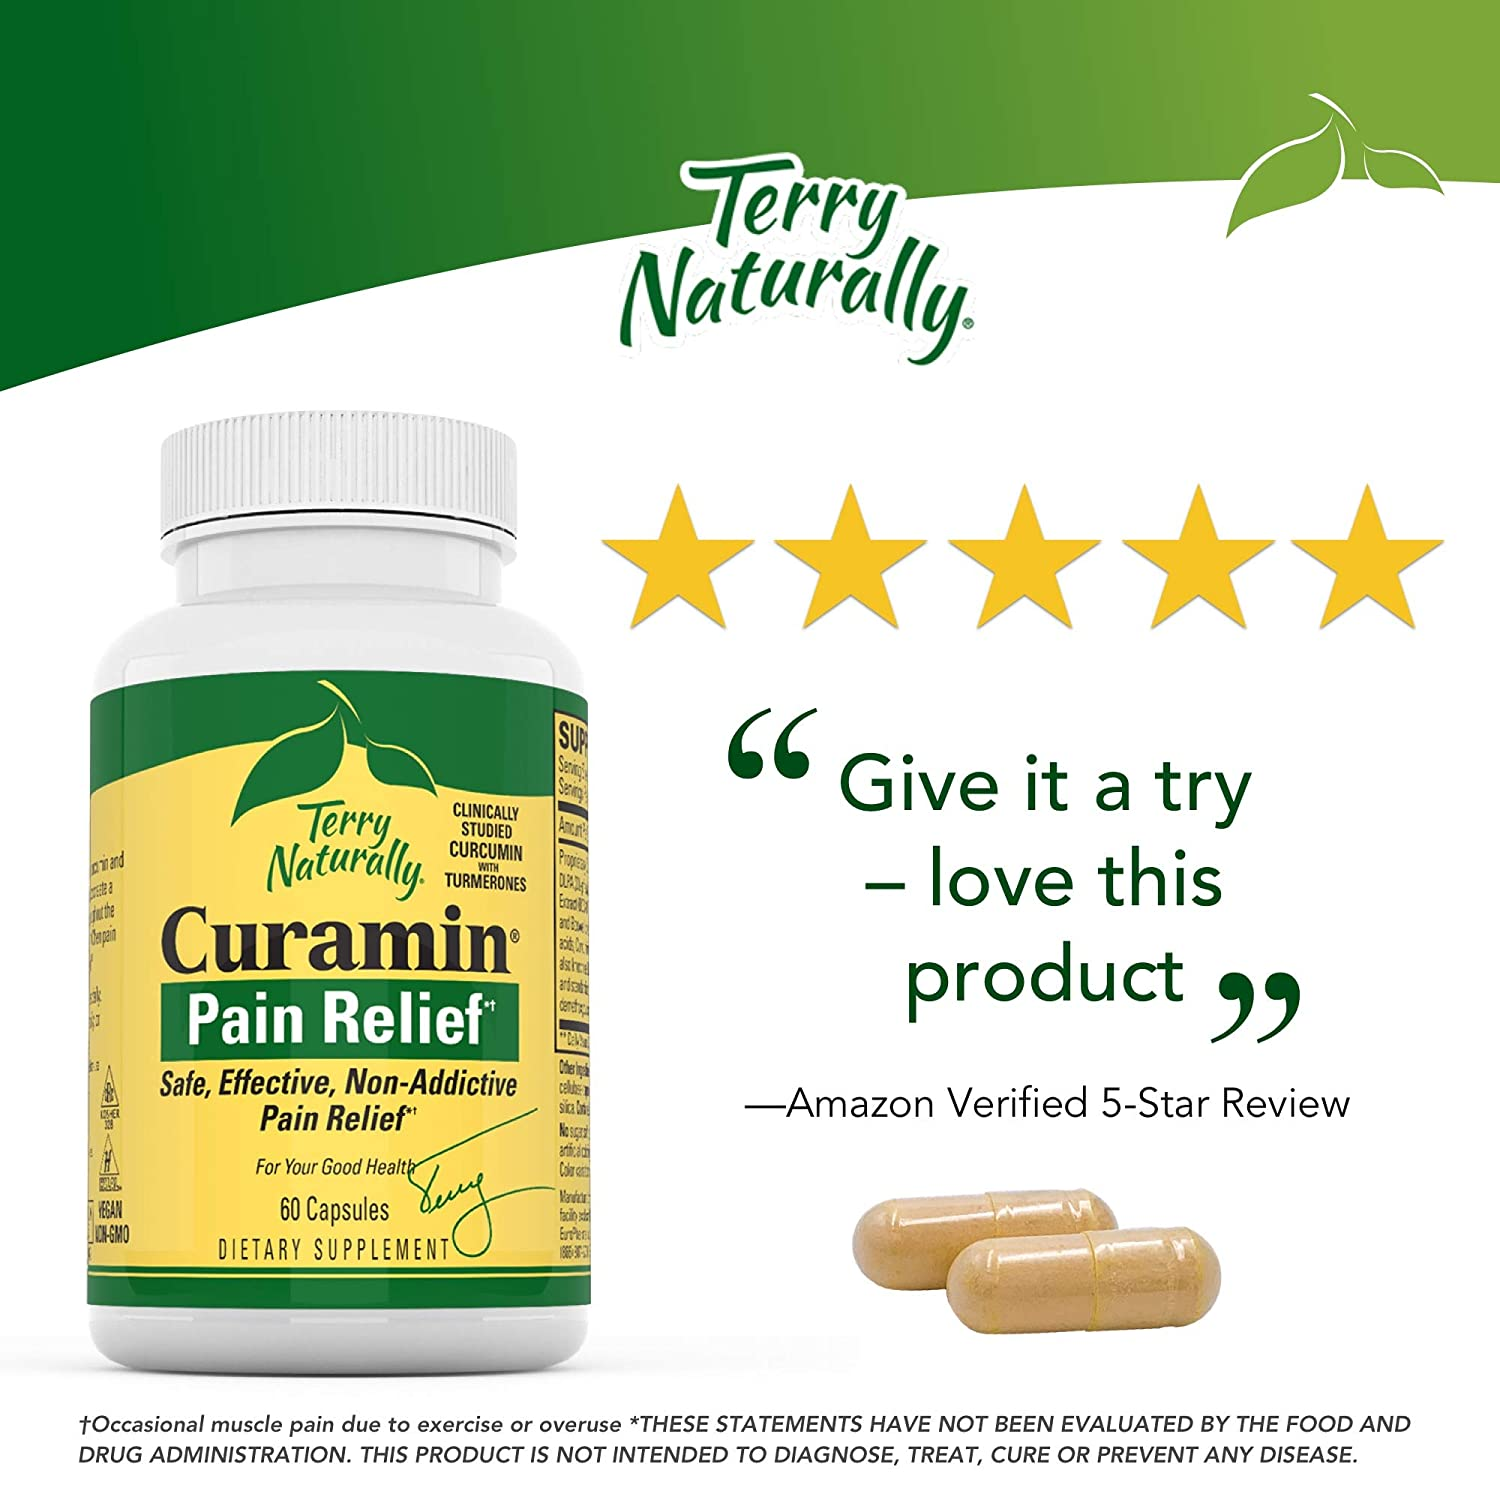 Terry Naturally Curamin – 60 Vegan Capsules – Non-Addictive Pain Relief Supplement with Curcumin from Turmeric, Boswellia DLPA – Non-GMO, Gluten-Free – 20 Servings